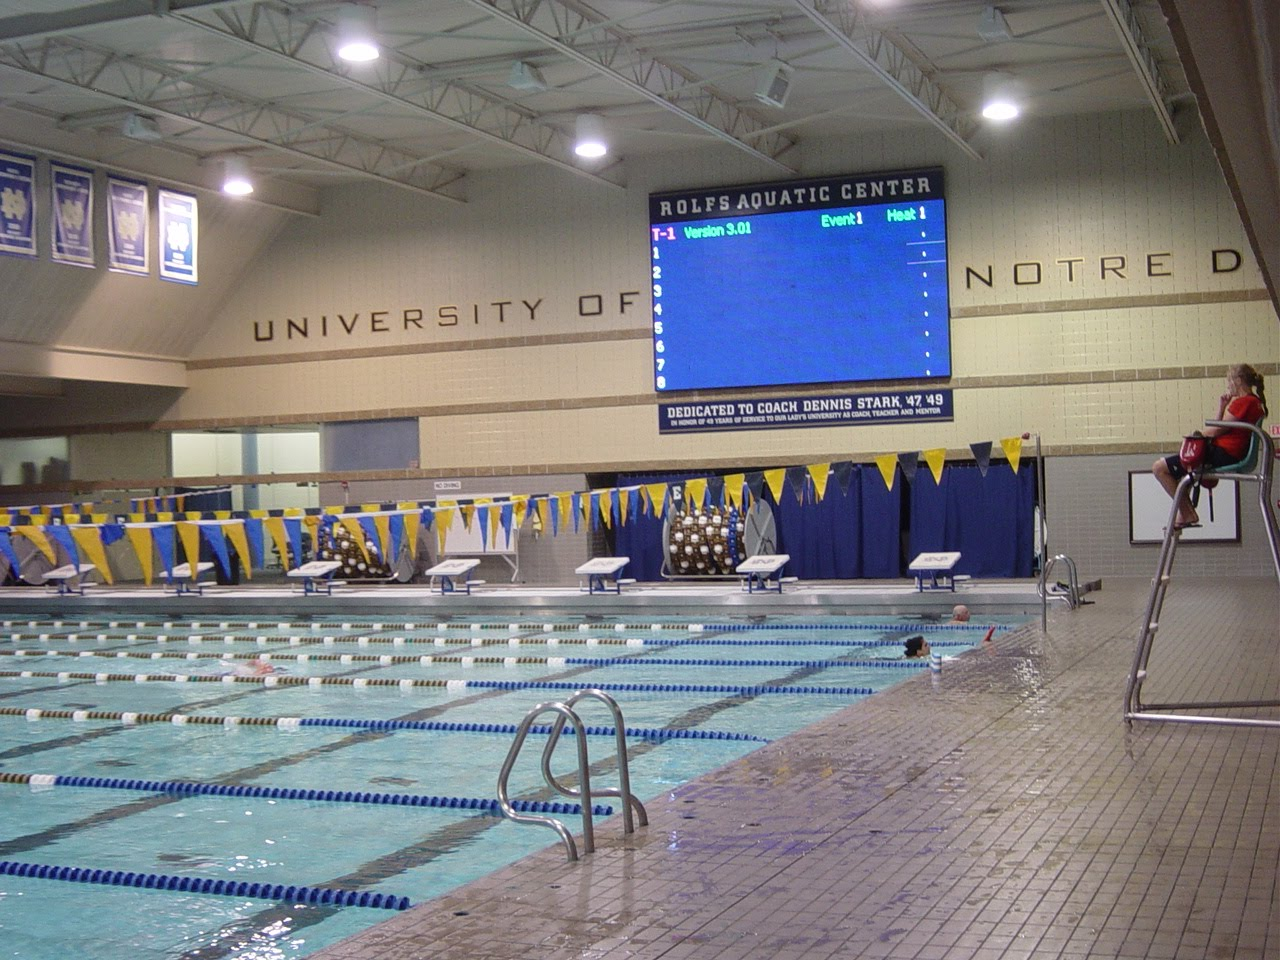 Rolf Aquatic Center